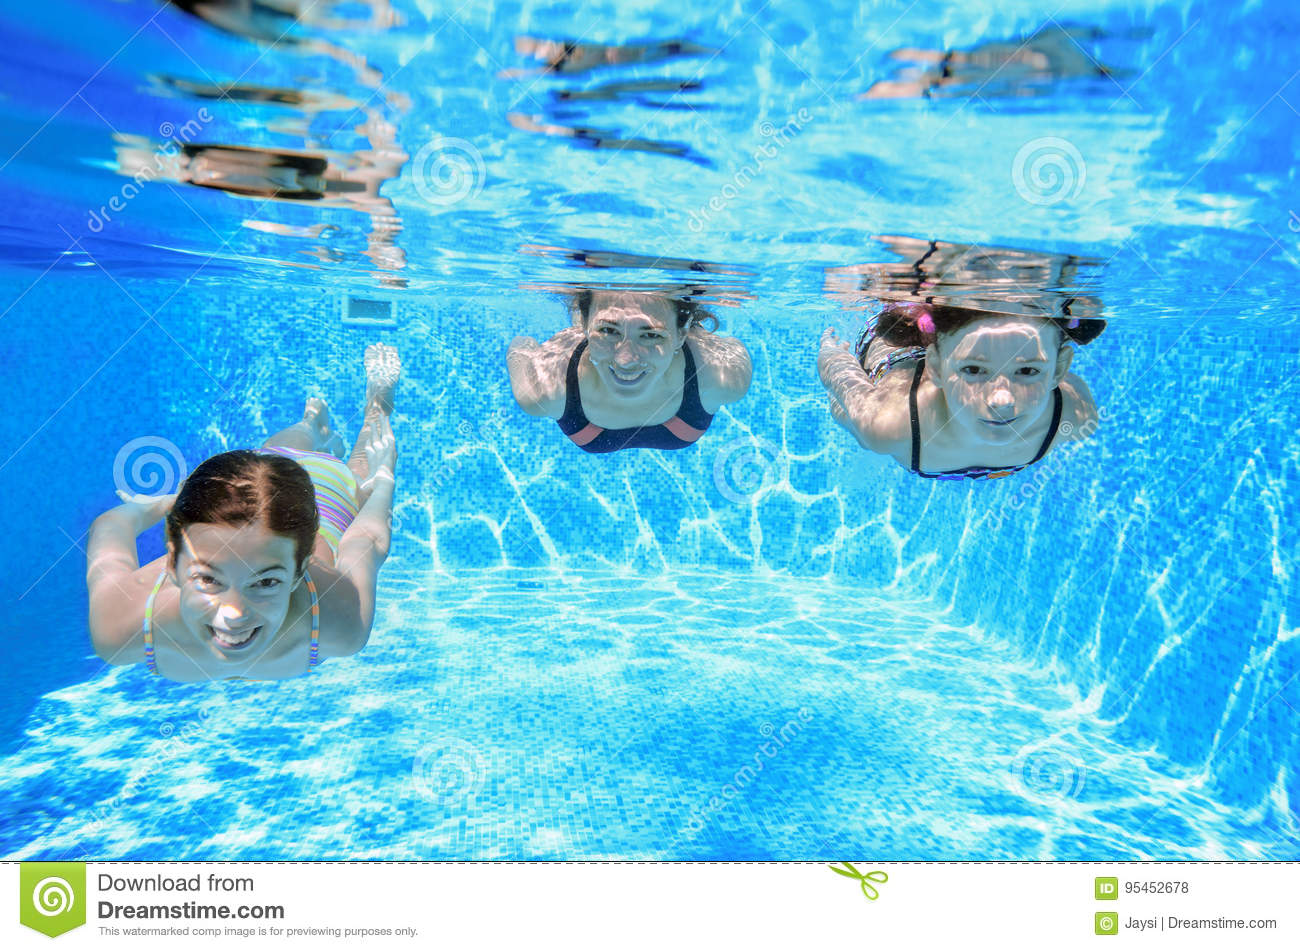 Family swimming in pool under water, happy active mother and children have fun, fitness and sport with kids